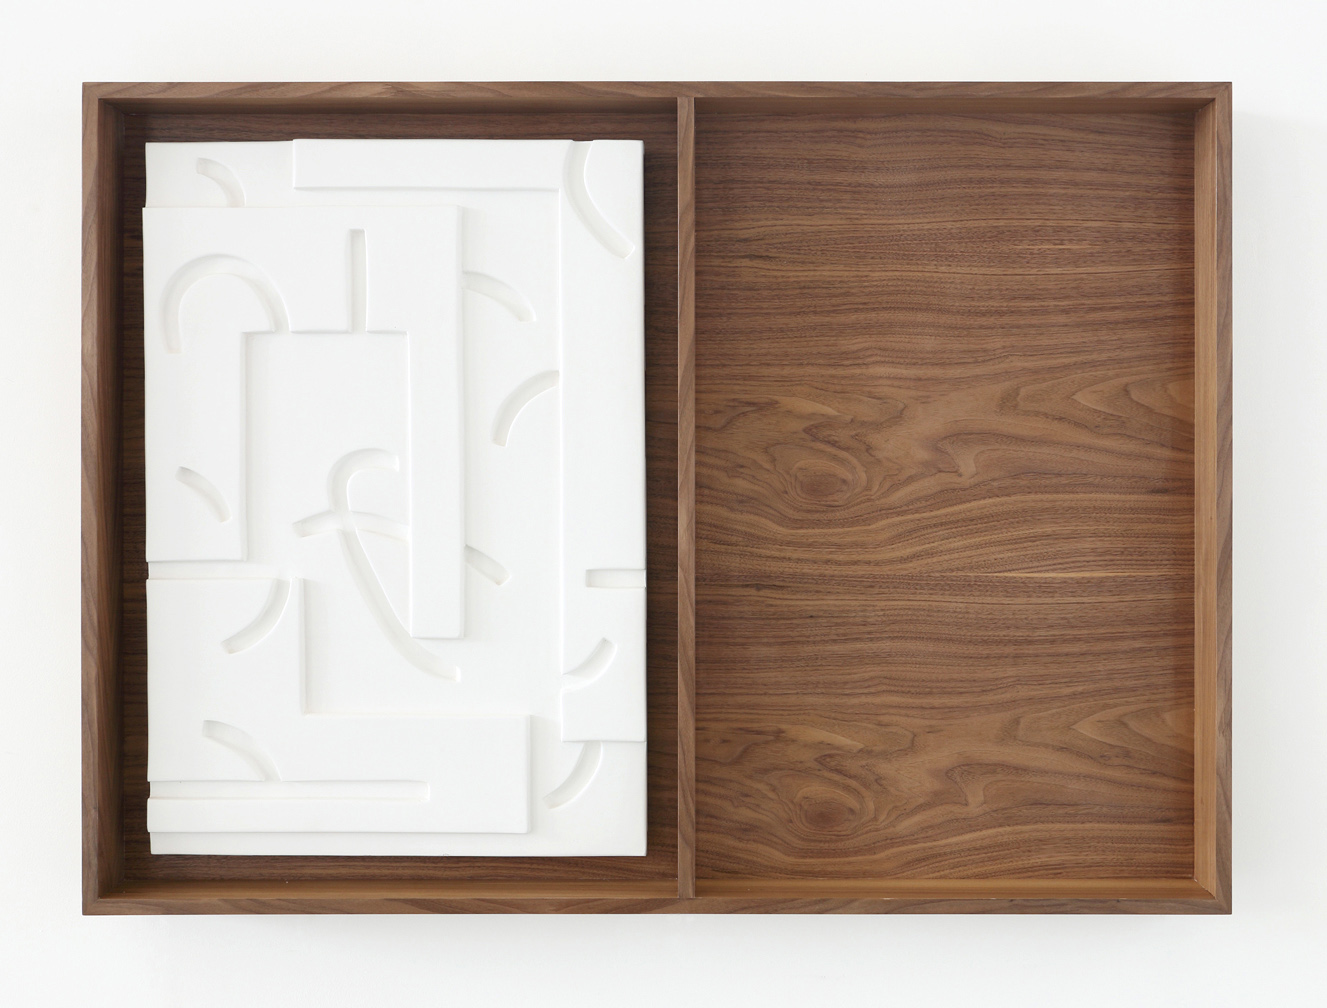 This is where you'll find me (panel 2) , 2013 Plaster, lacquer, walnut veneered mdf